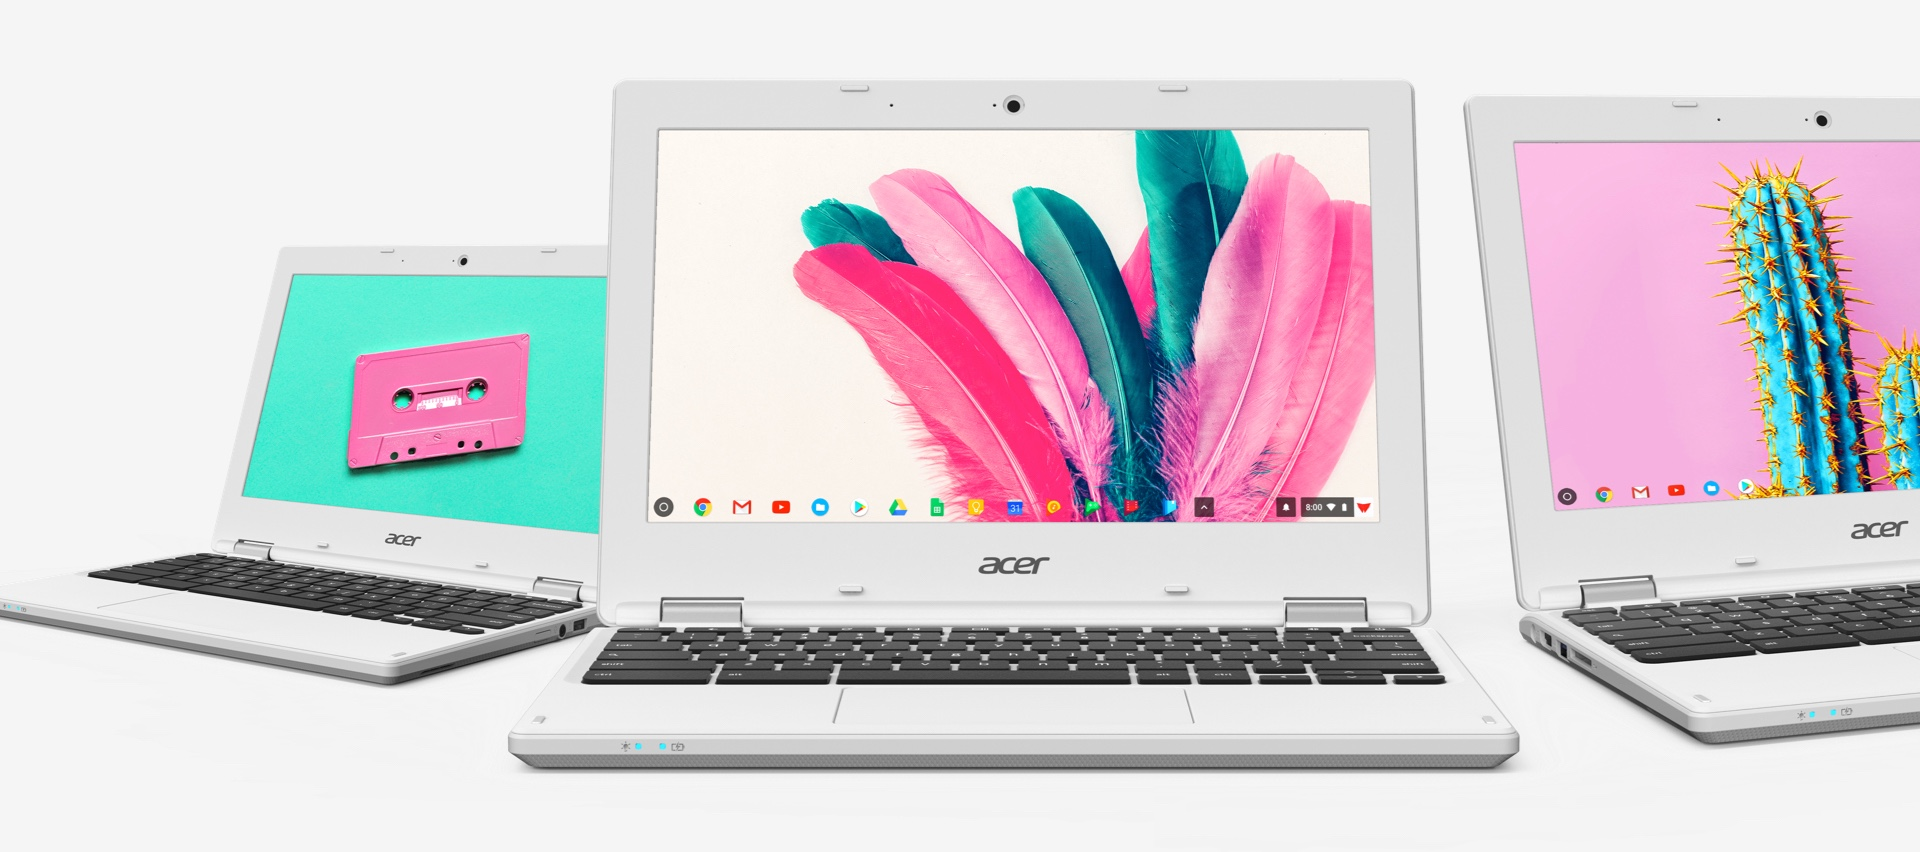 Chromebook 11 CB3-132 design ksp 01 - Large